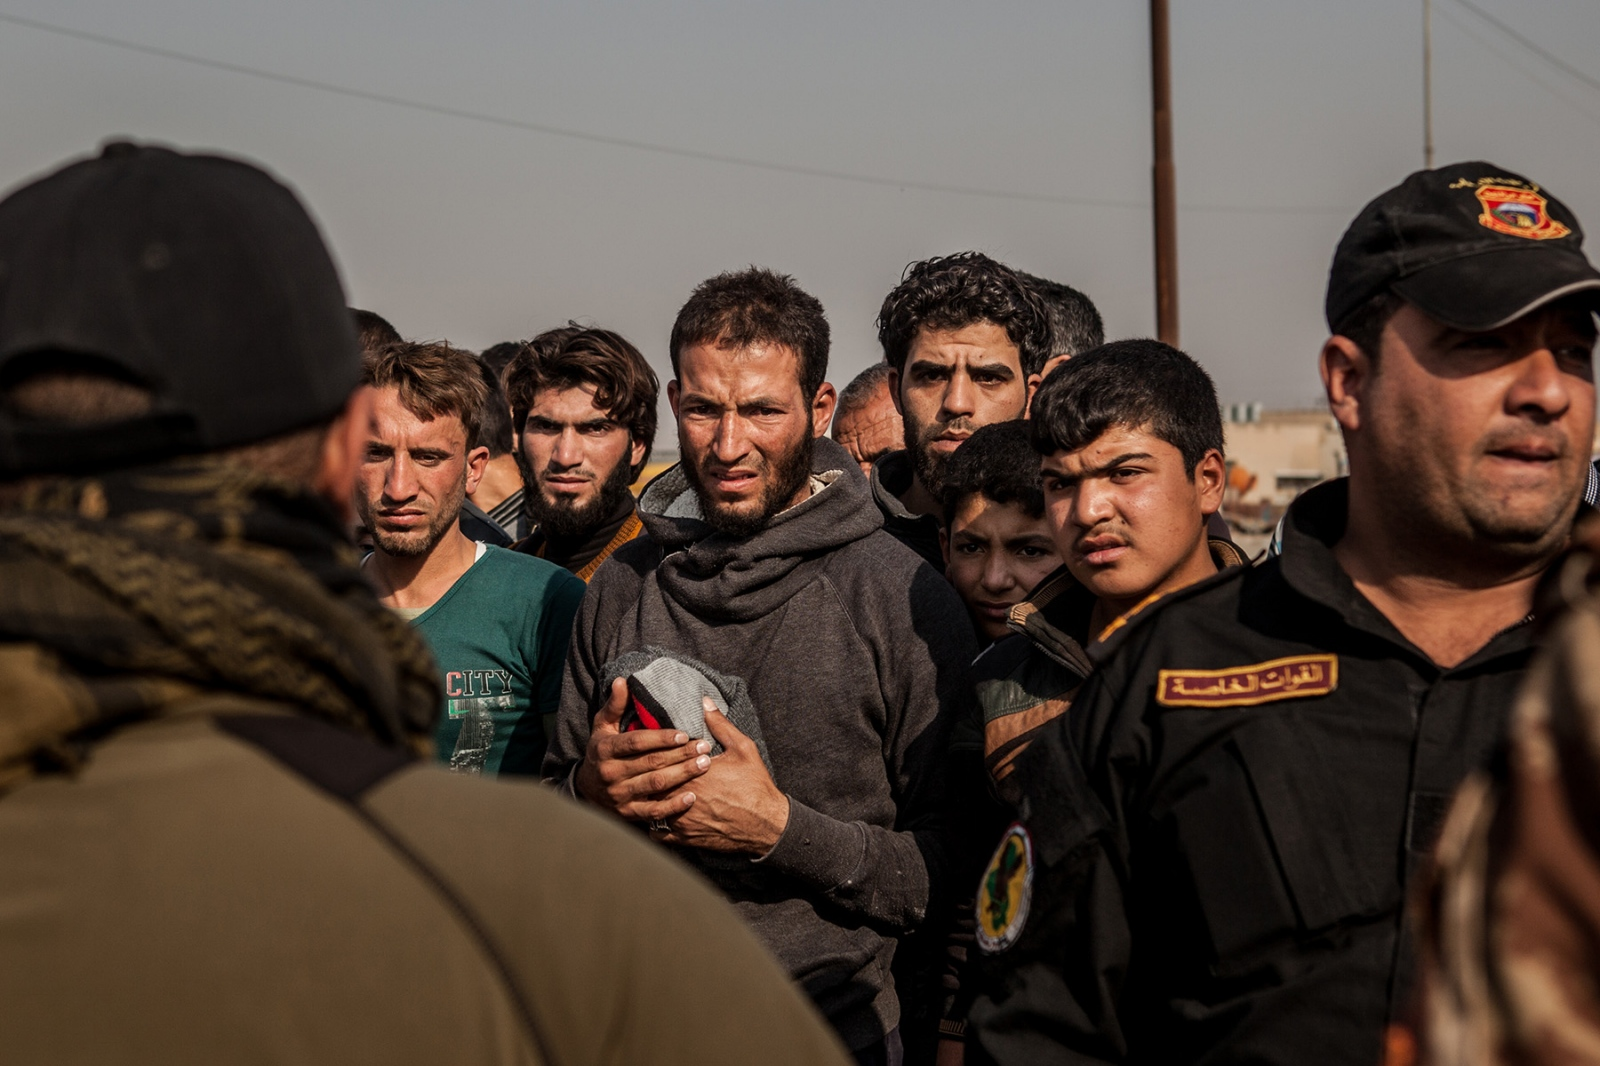 Men wait to have their IDs returned to them following security checks against wanted lists of ISIS fighters in Gogjali, Iraq, a few kilometers from Mosul, November 2016. Various checkpoints have been set up on the road out of Mosul to ensure that those fleeing amongst civilians are not ISIS members.